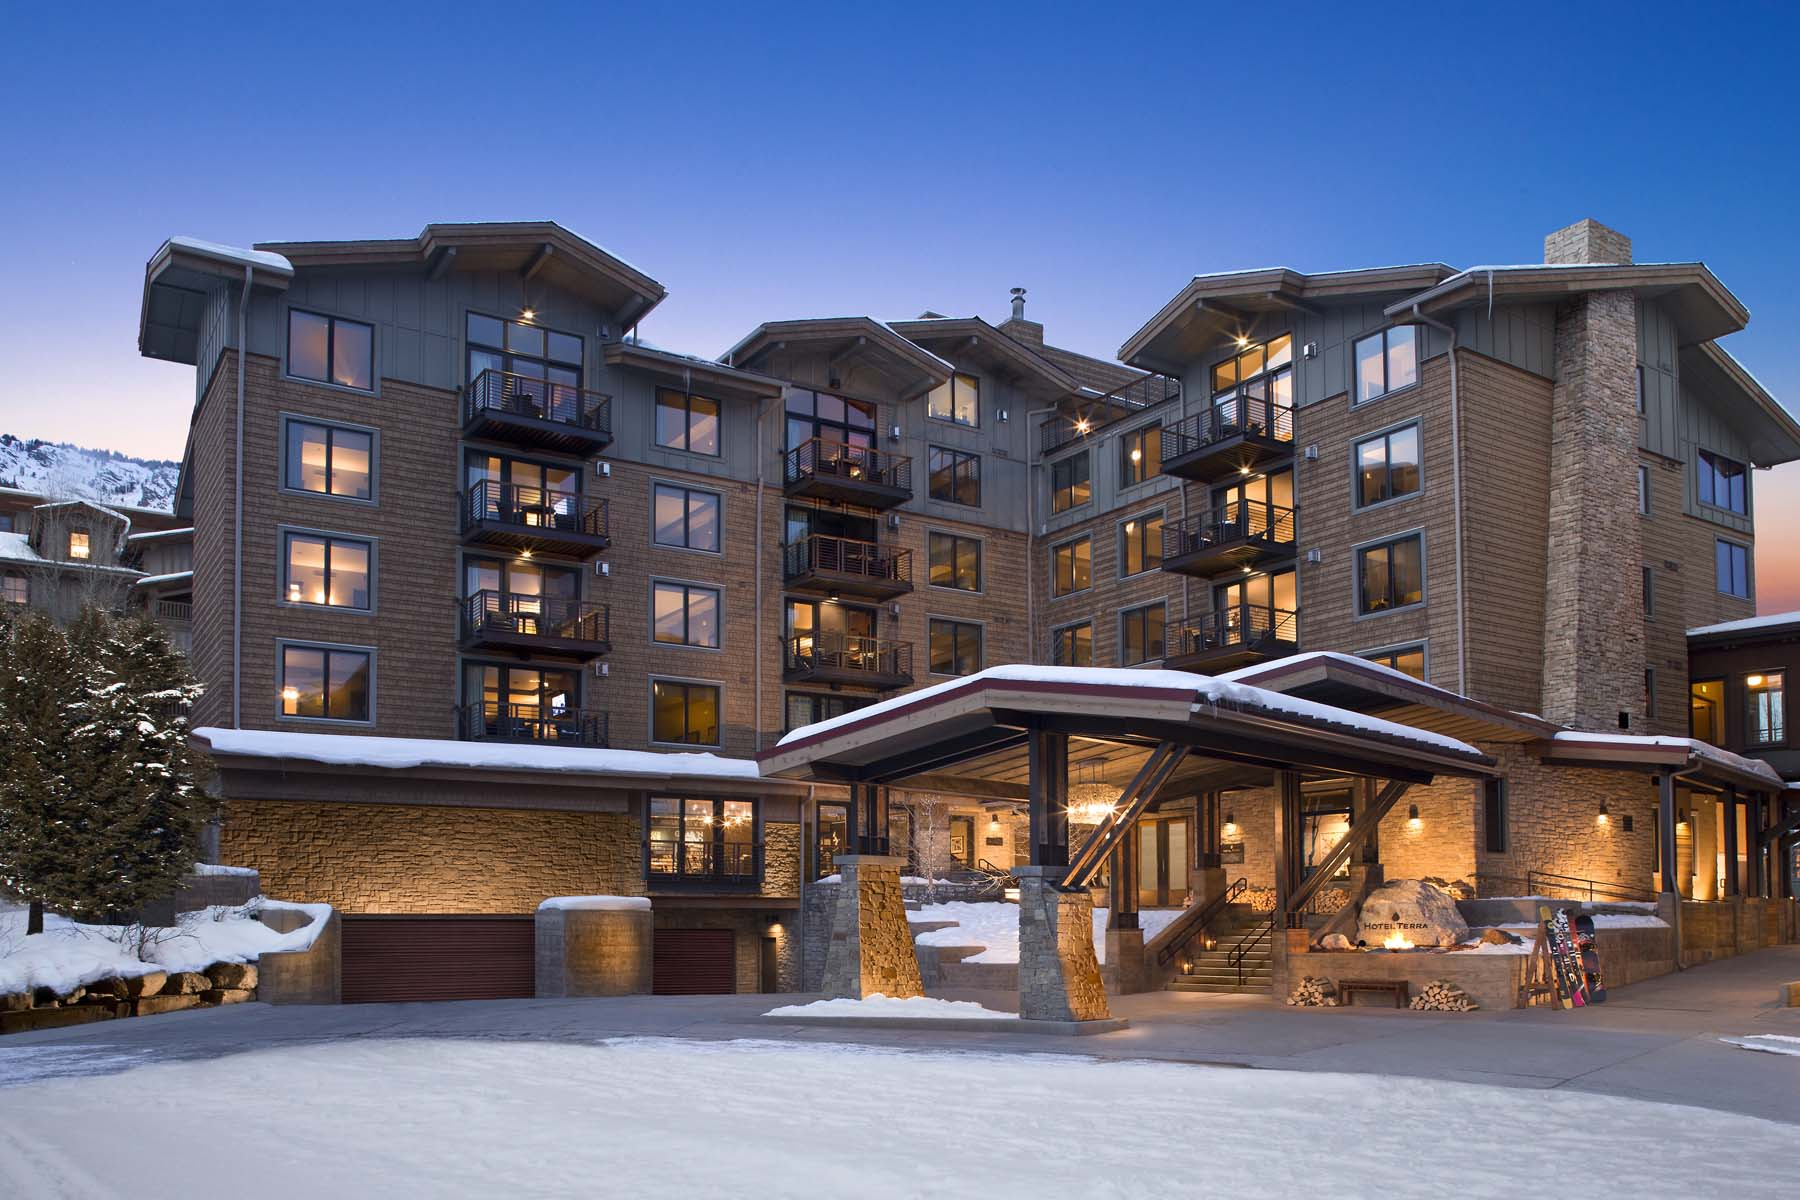 共管物業 為 出售 在 Slopeside 3 bedroom/4 bath condo 3325 W. Village Drive Unit 267 Teton Village, 懷俄明州, 83025 Jackson Hole, 美國